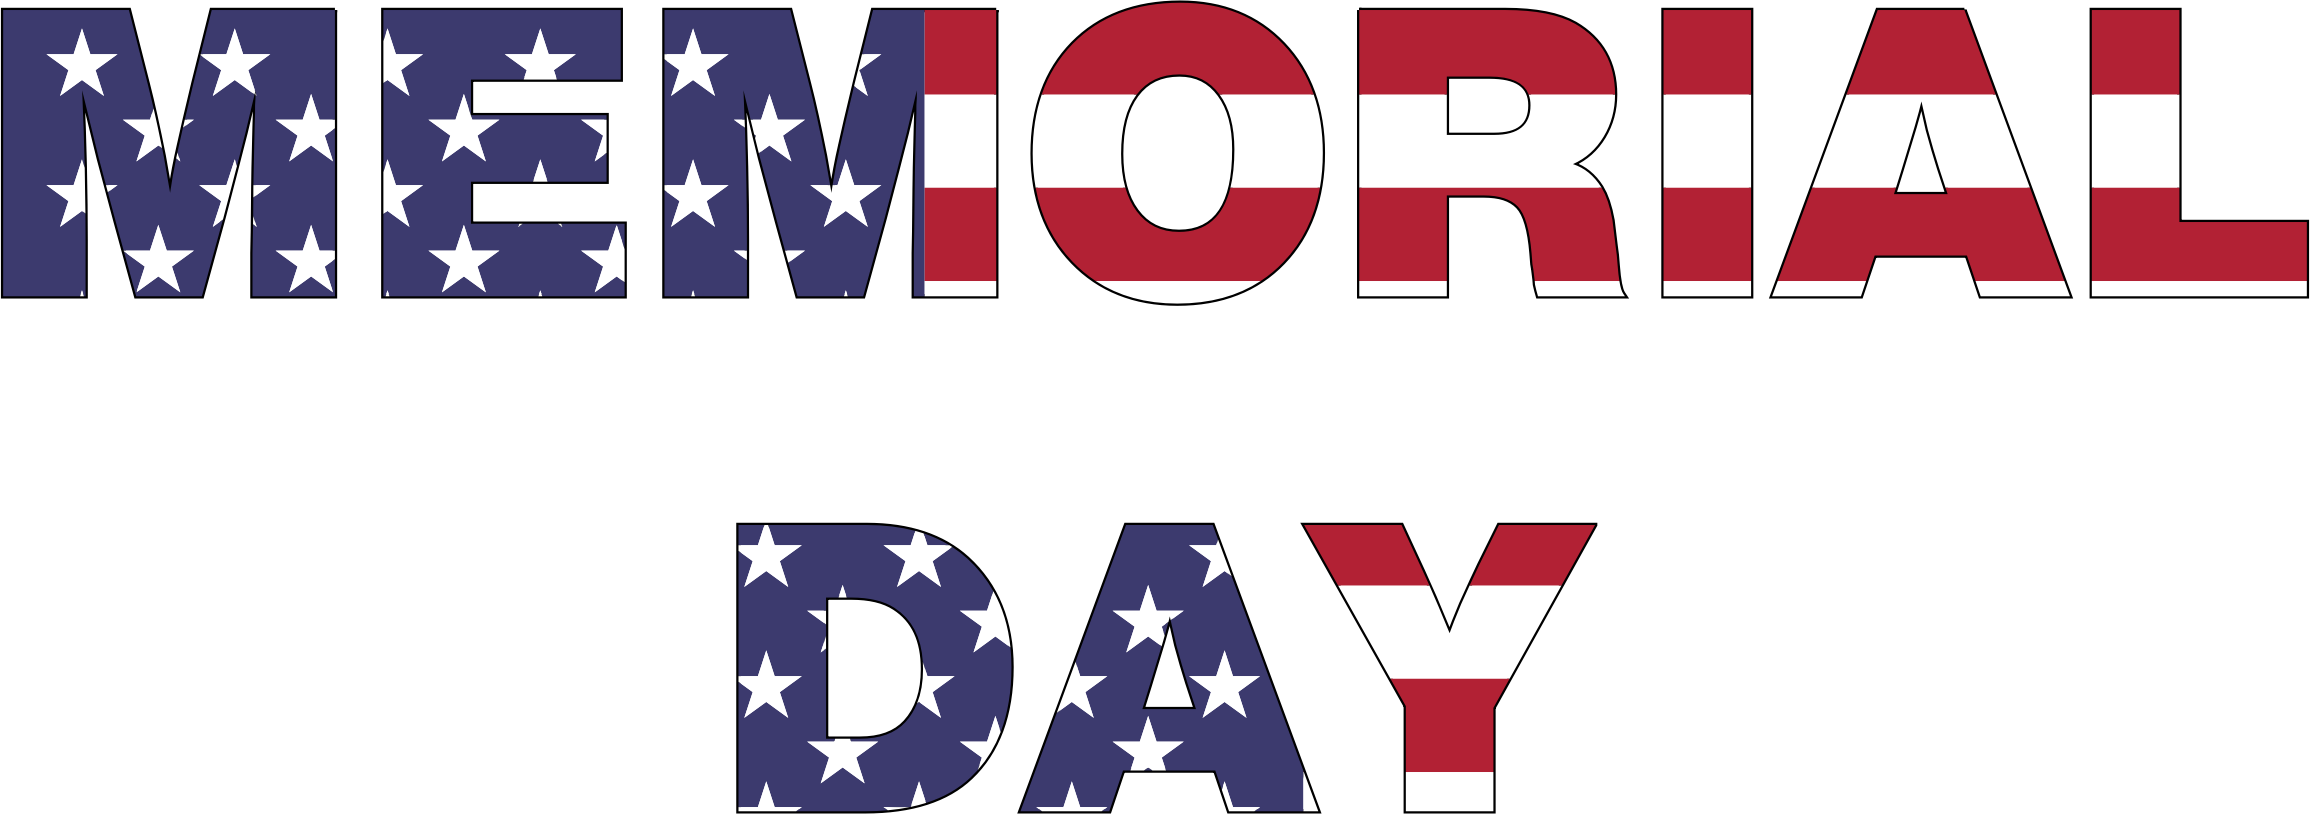 Memorial Day Typography With Strokes by GDJ